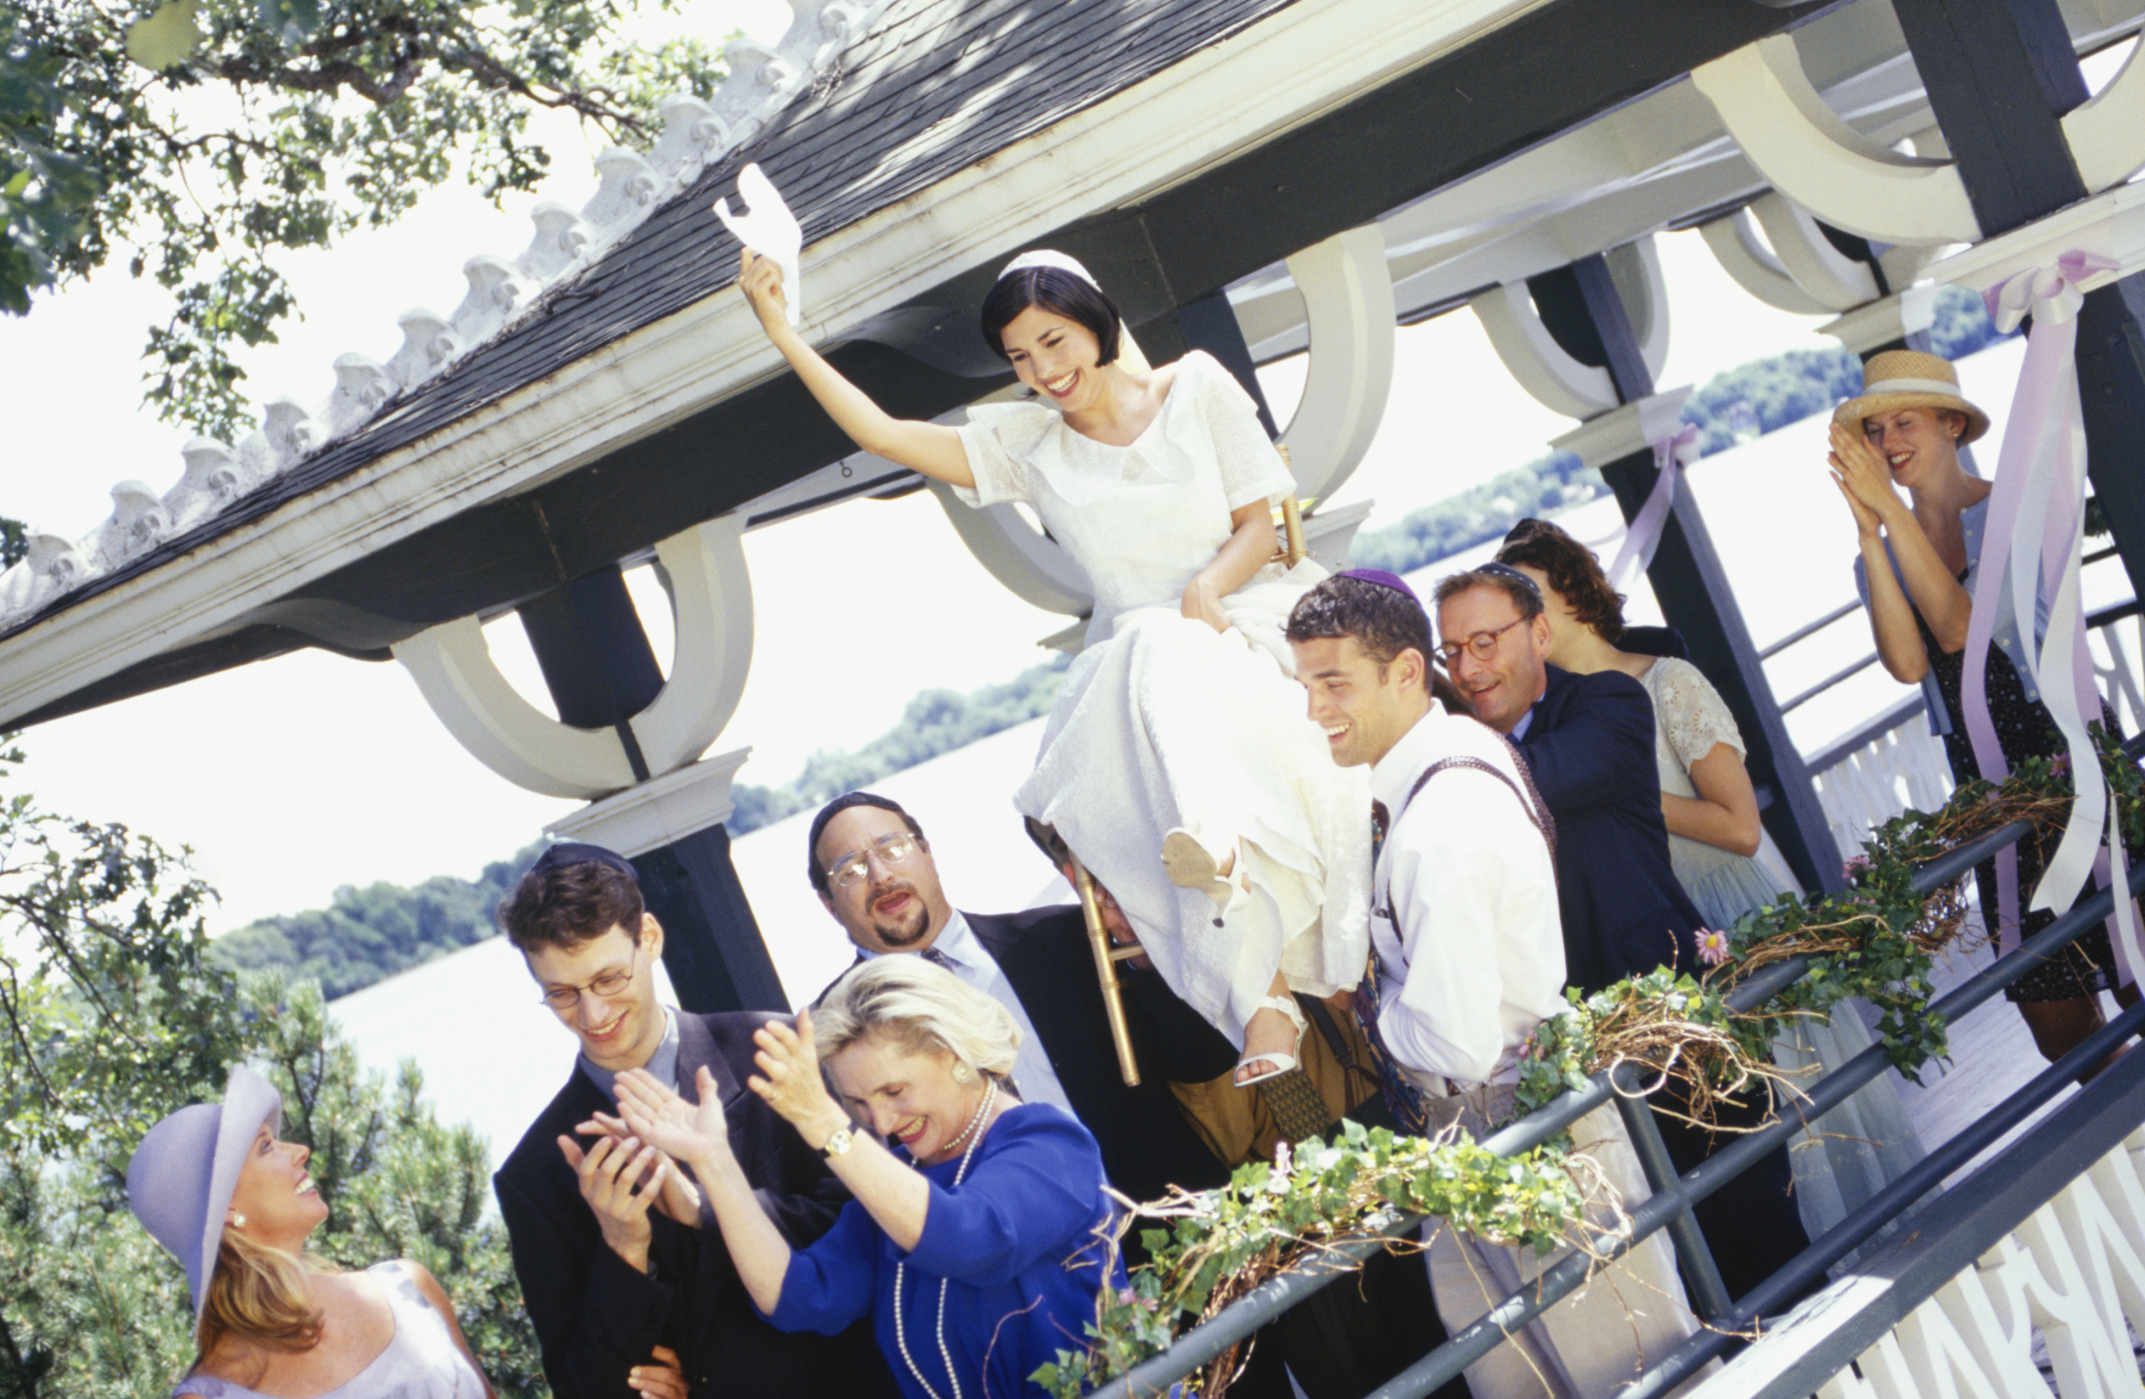 Jewish Wedding Music Articles Easy Weddings